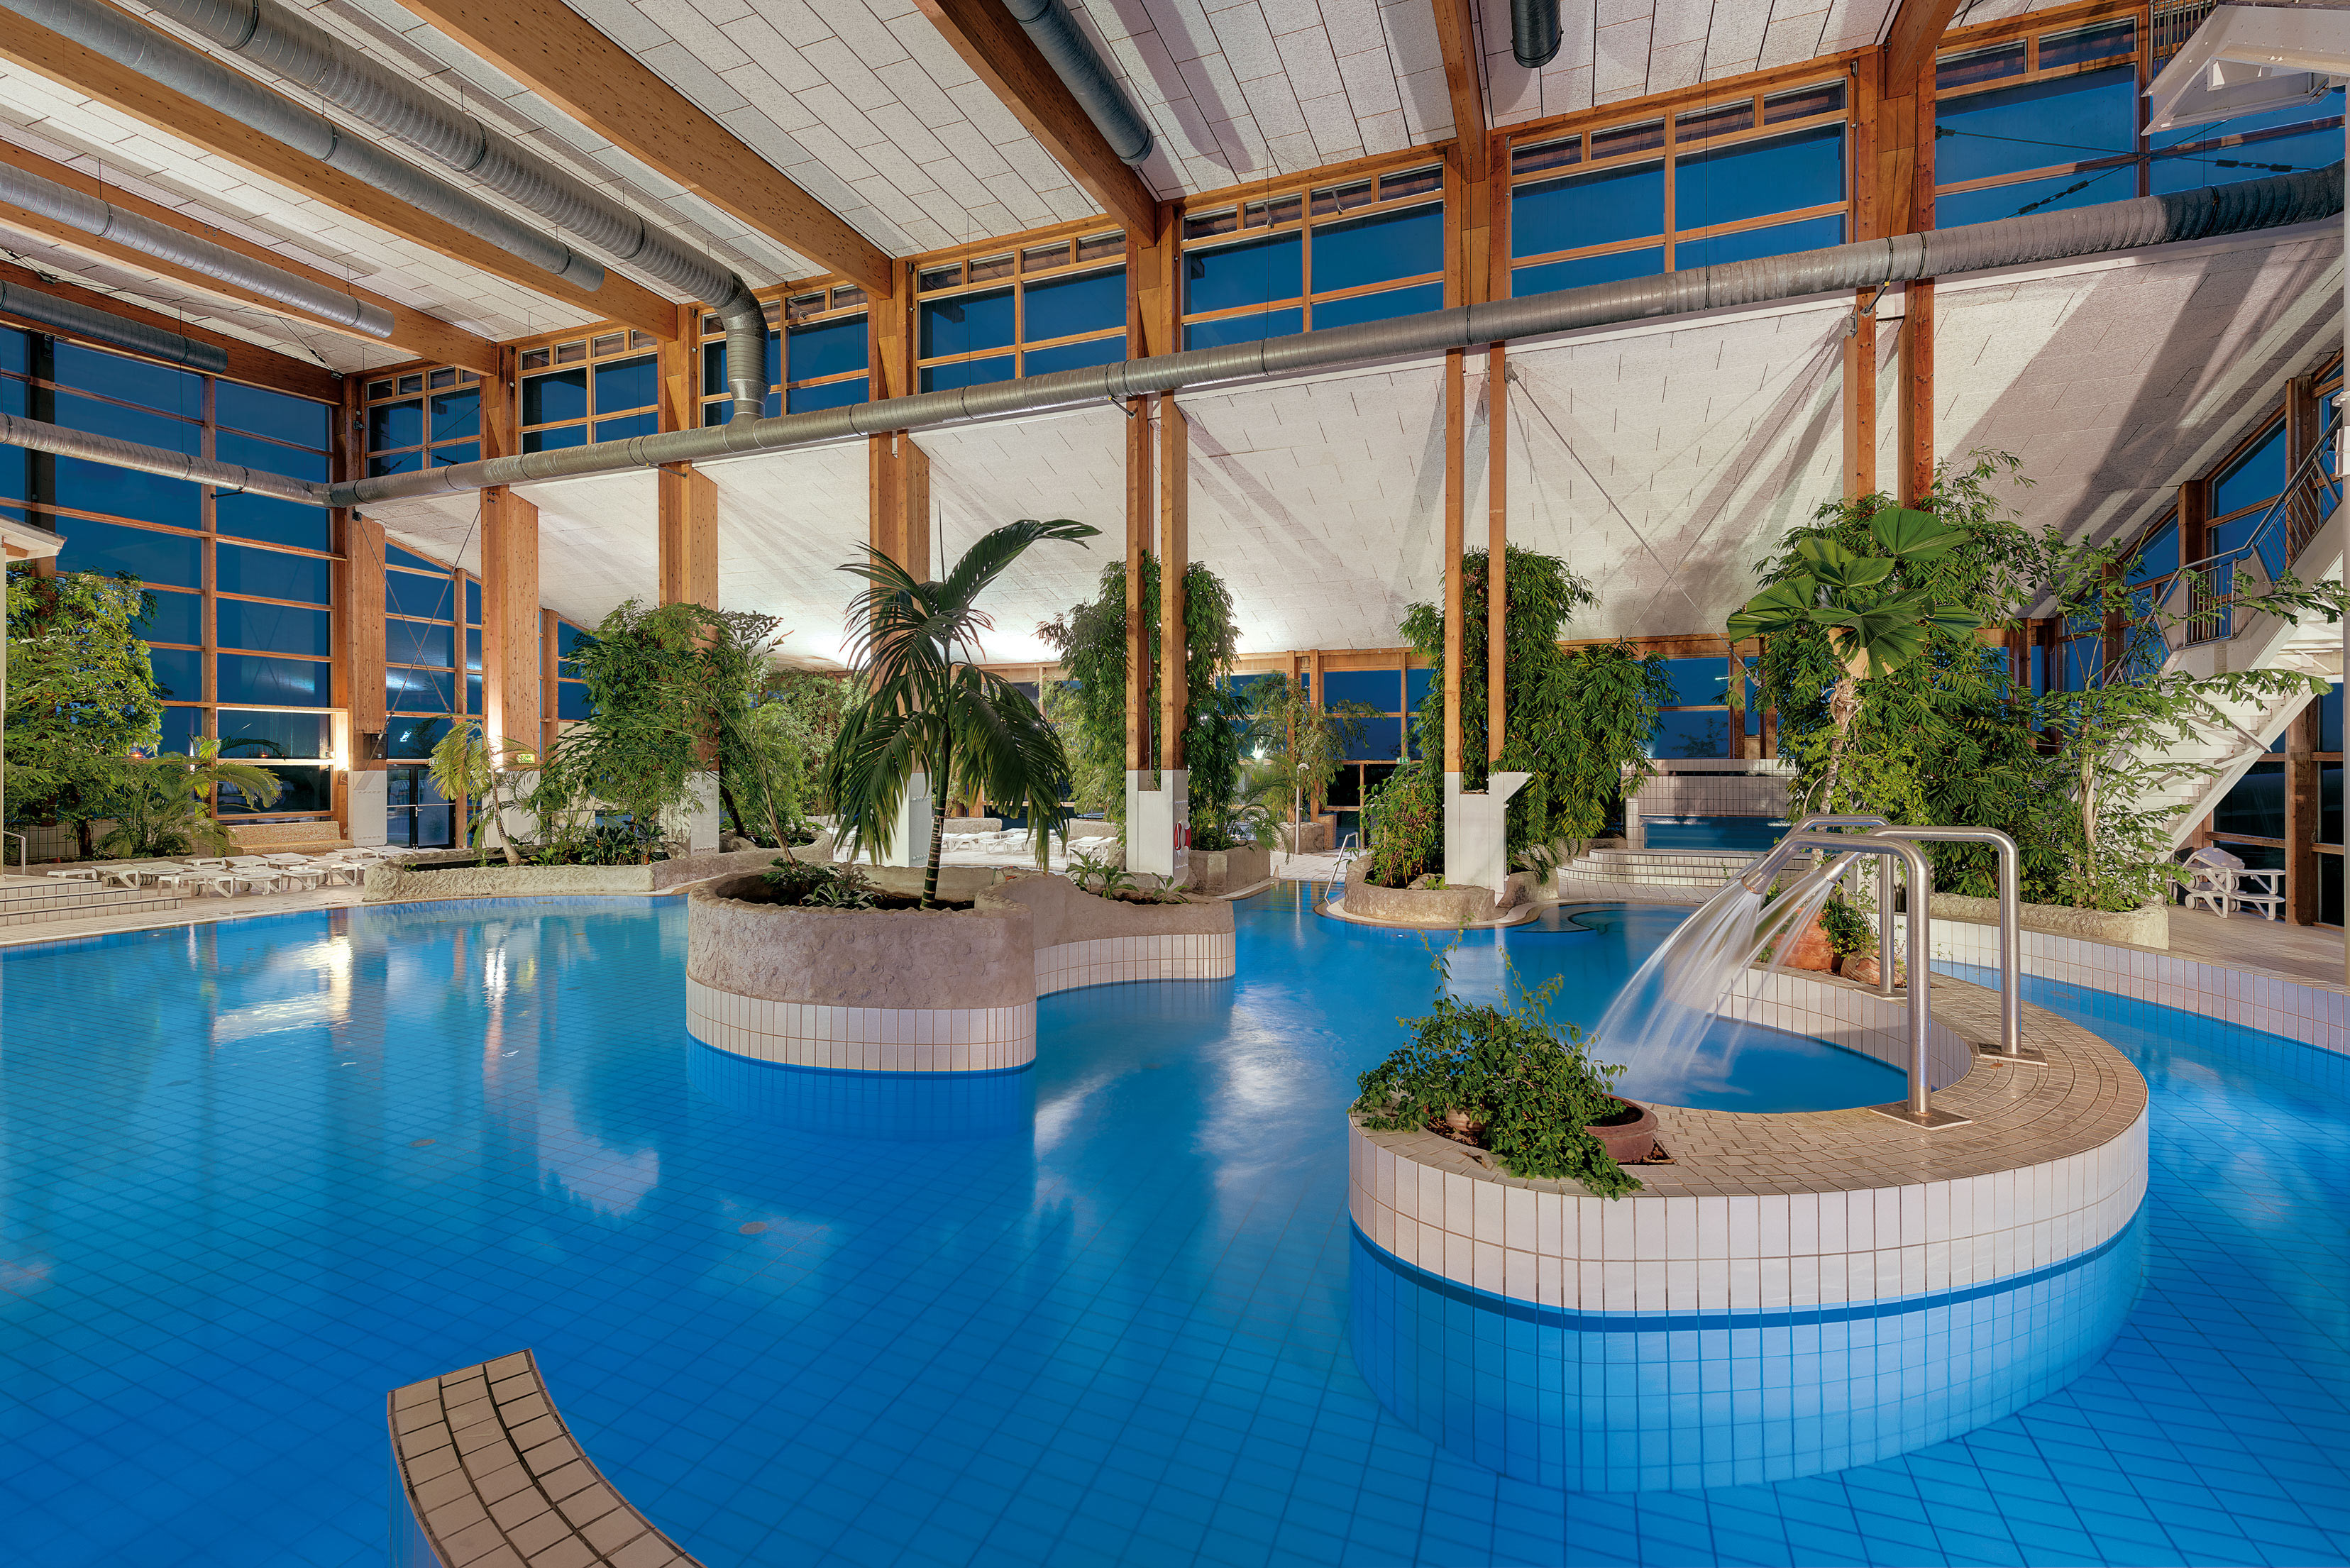 Splash Therme